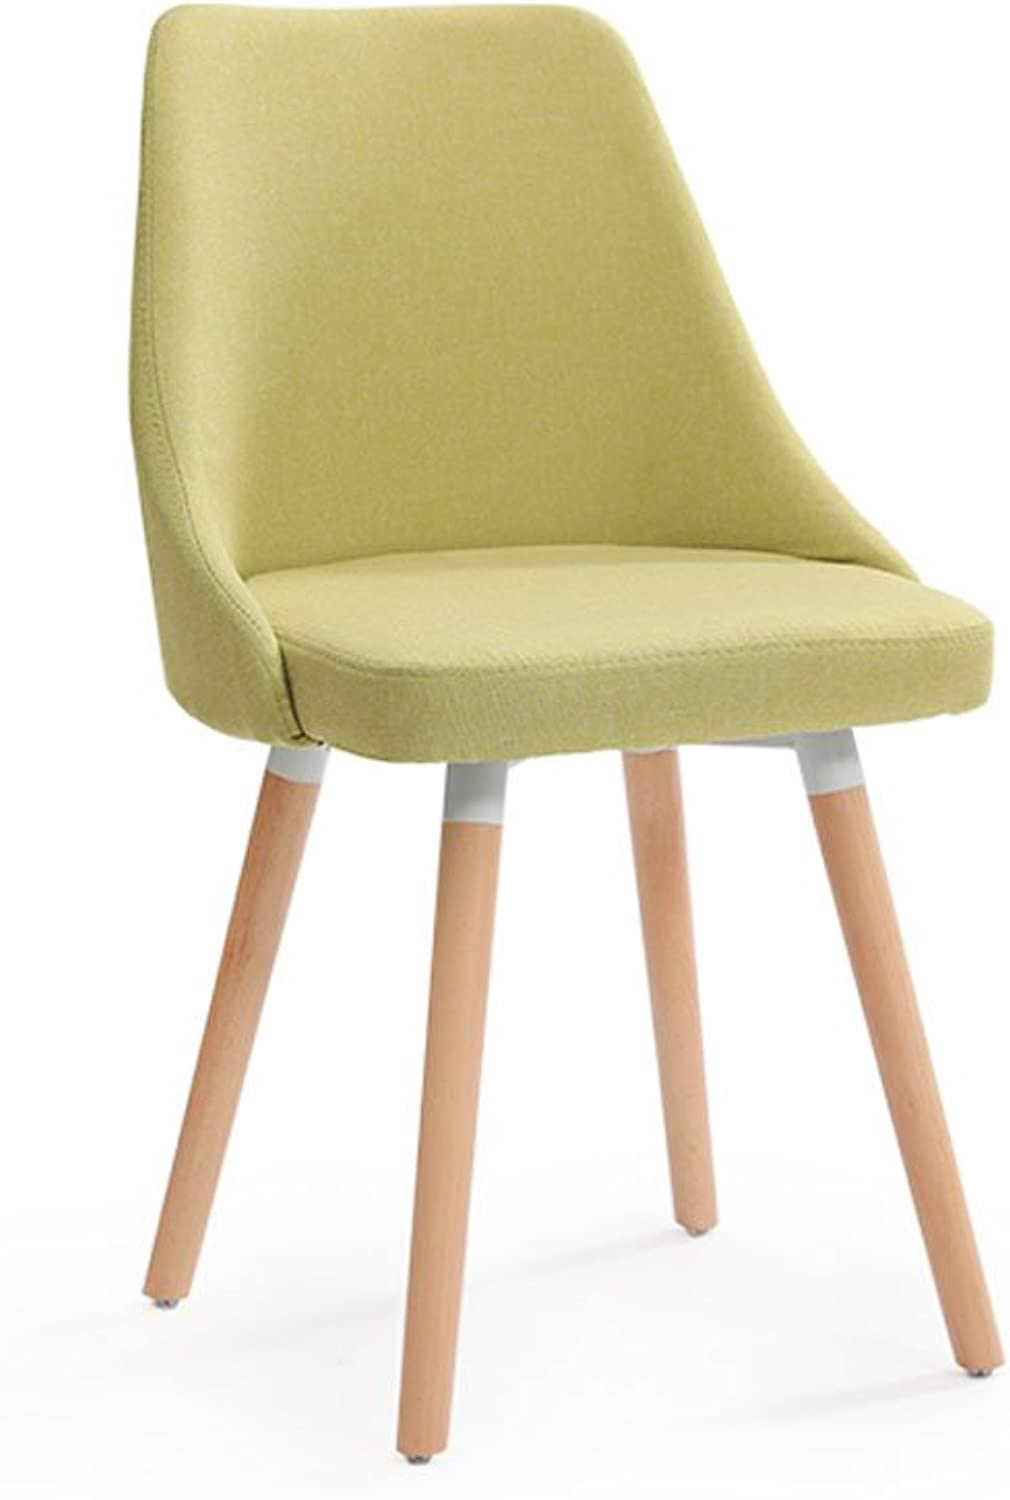 JCRNJSB? Solid wood chair fashion Northern Europe Backrest Dining chair Household stool Modern minimalist Cloth Desk and chair restaurant Removable round Short leg sofa stool Wooden benc (color    3)